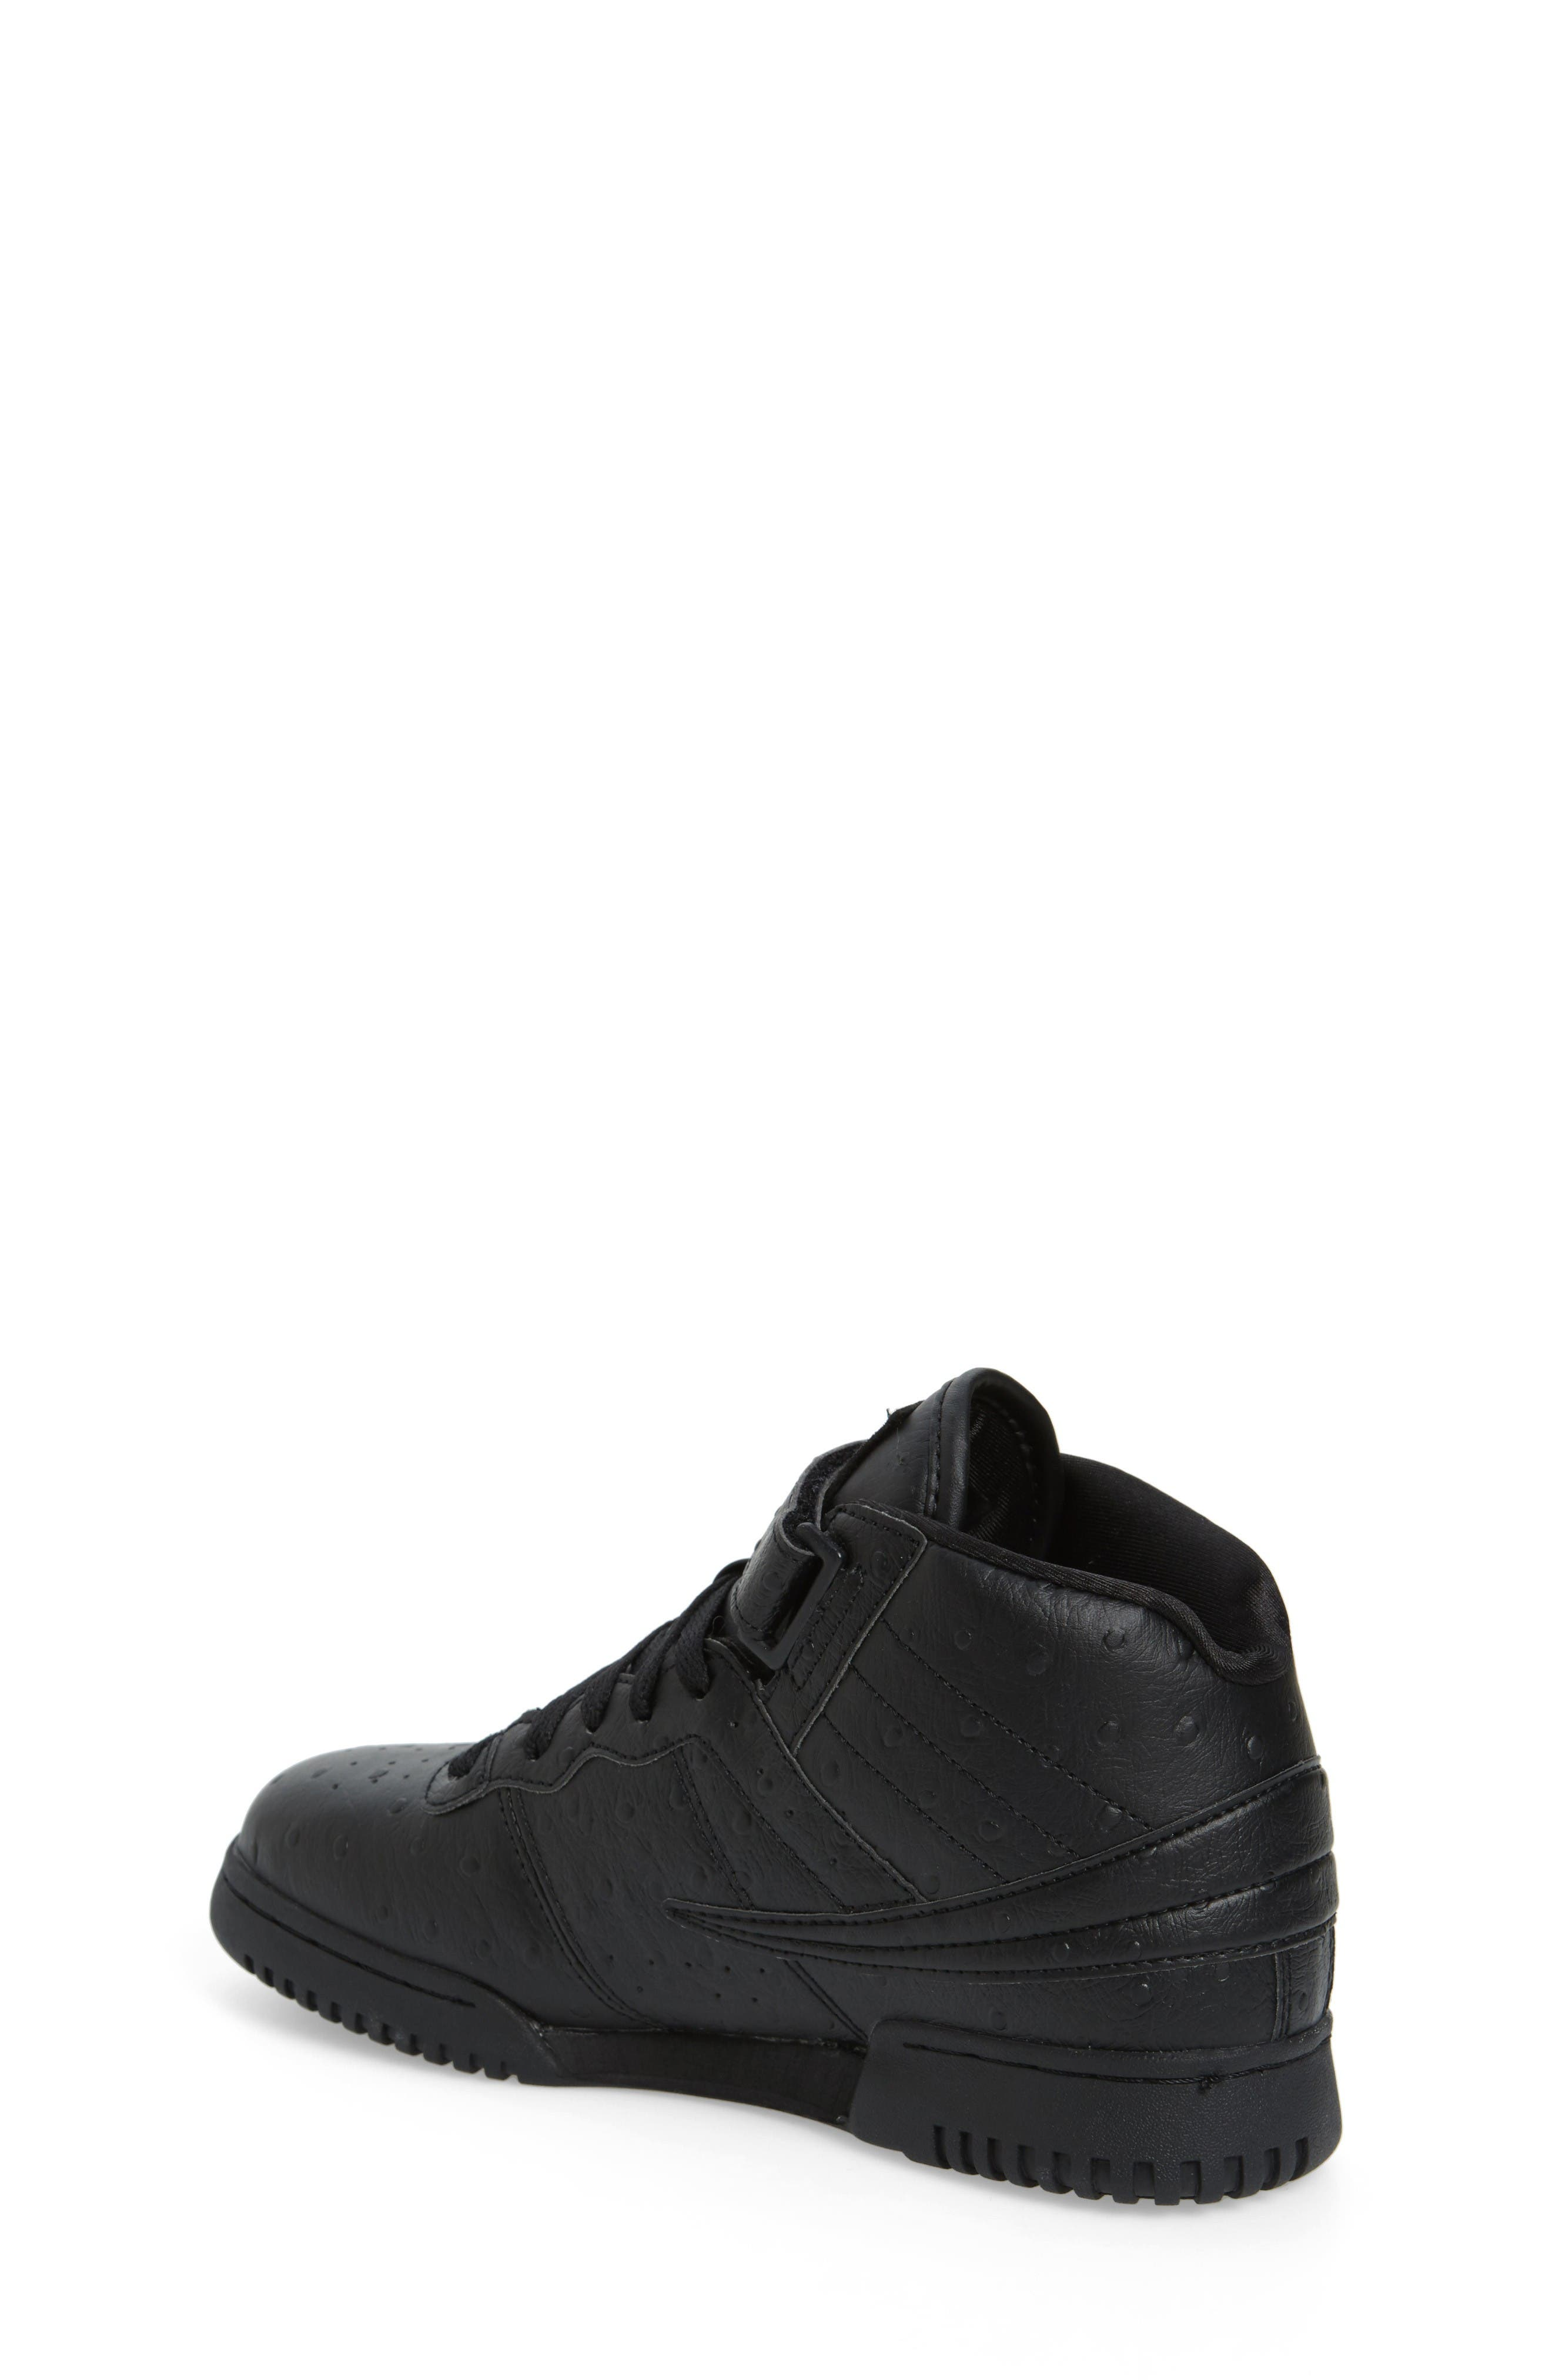 F-13 Ostrich Embossed High Top Sneaker,                             Alternate thumbnail 2, color,                             Triple Black